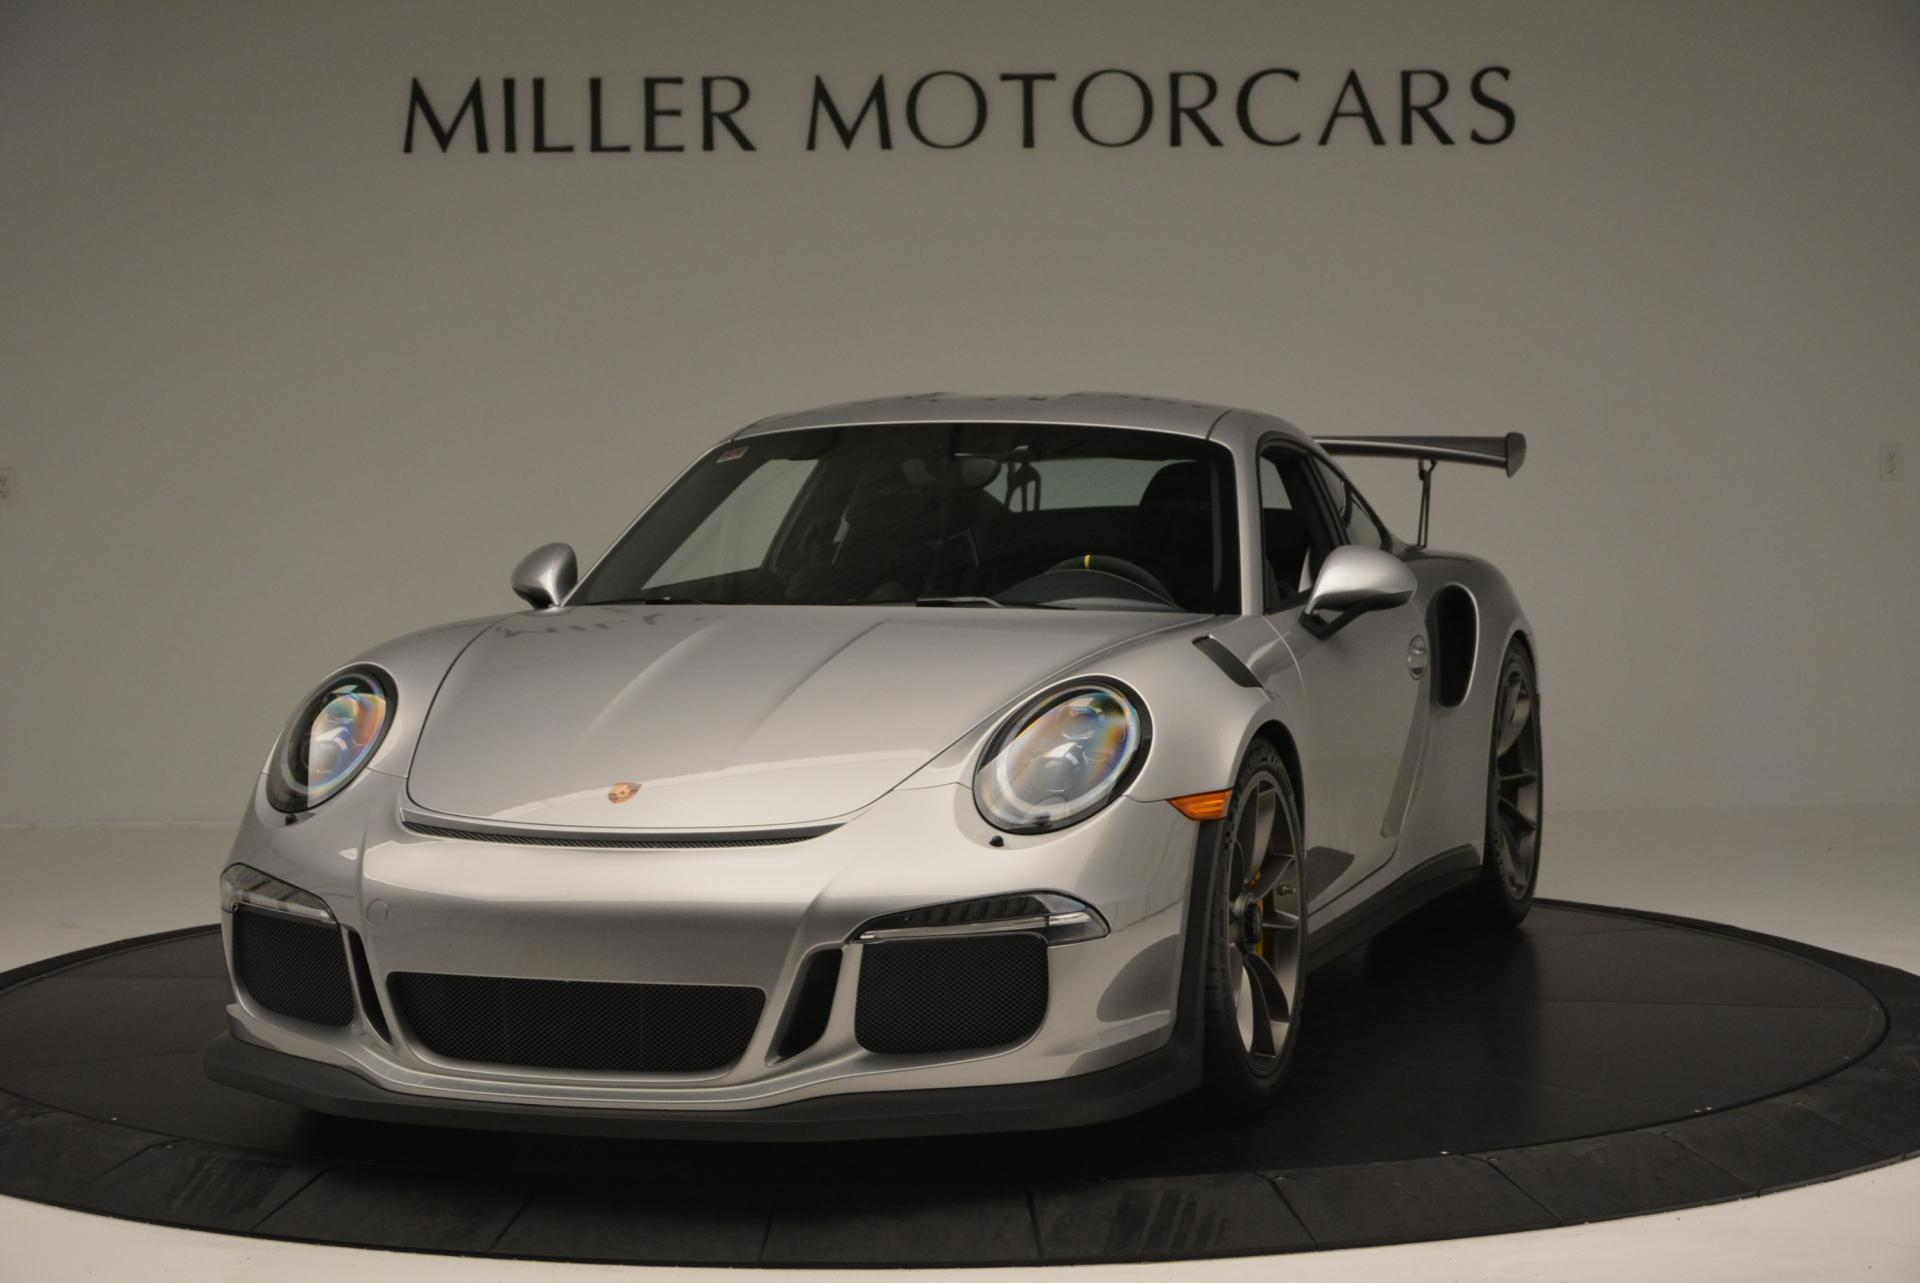 Used 2016 Porsche 911 GT3 RS for sale Sold at Bugatti of Greenwich in Greenwich CT 06830 1